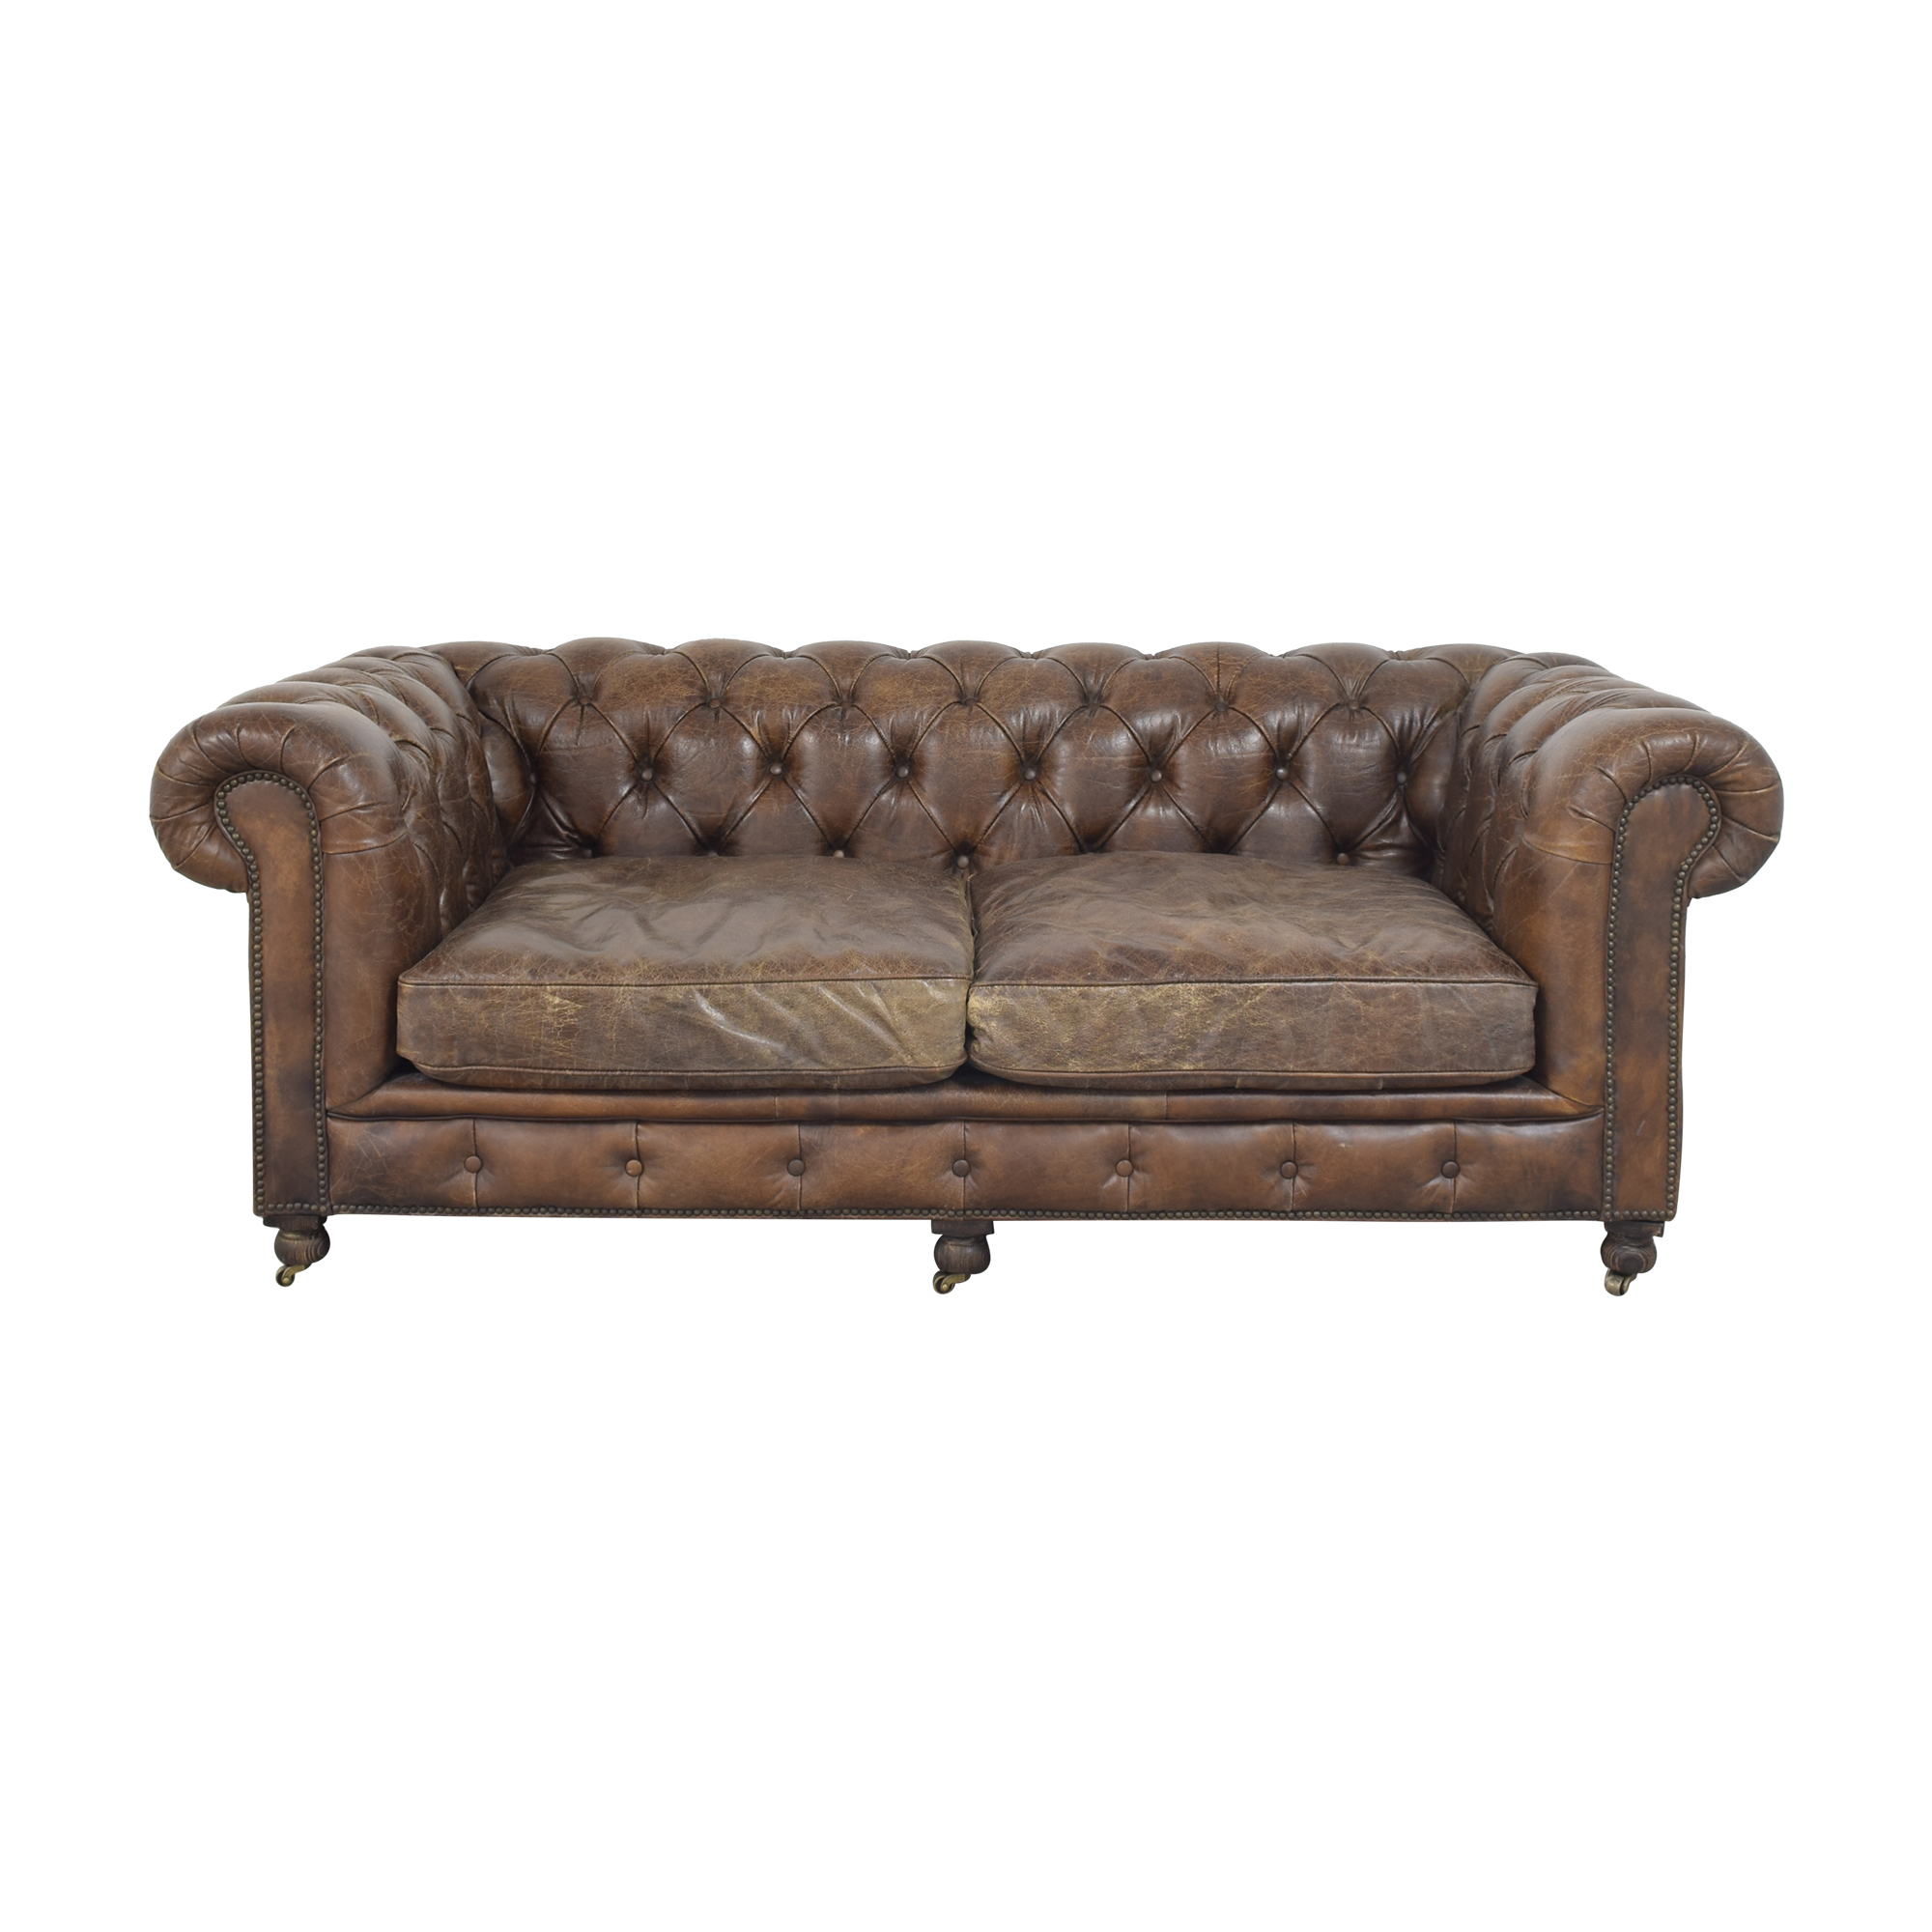 Restoration Hardware Kensington Sofa Restoration Hardware